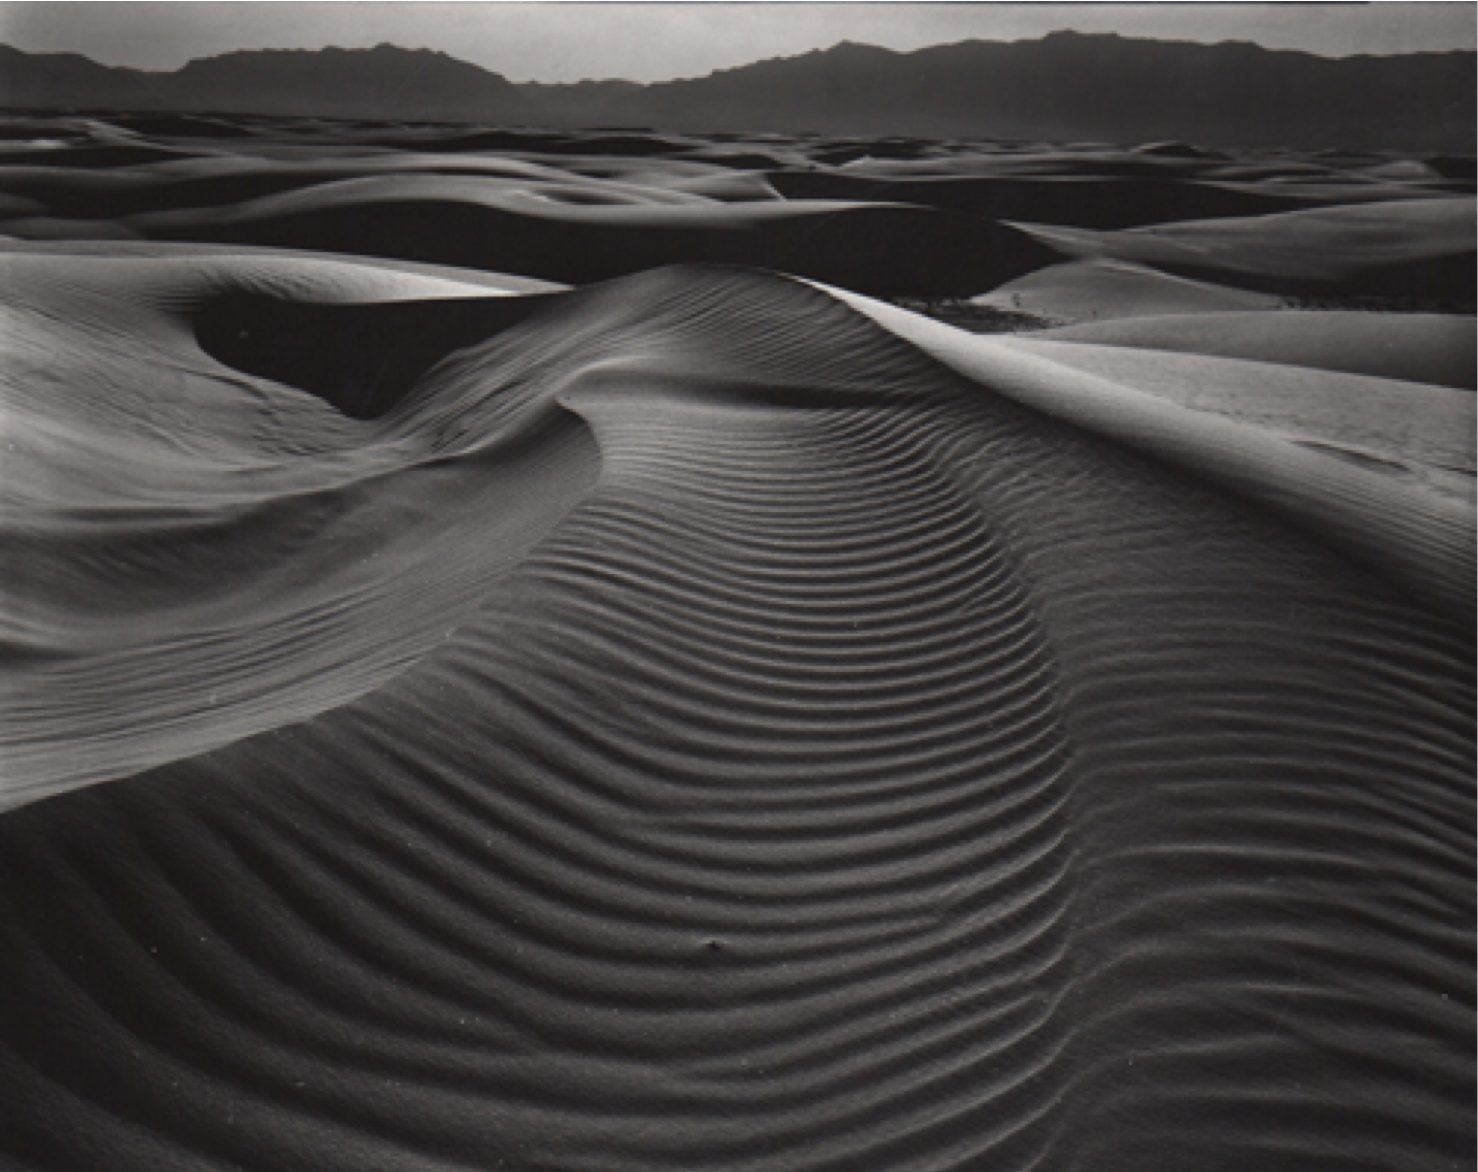 Dunes and Mountains, White Sands